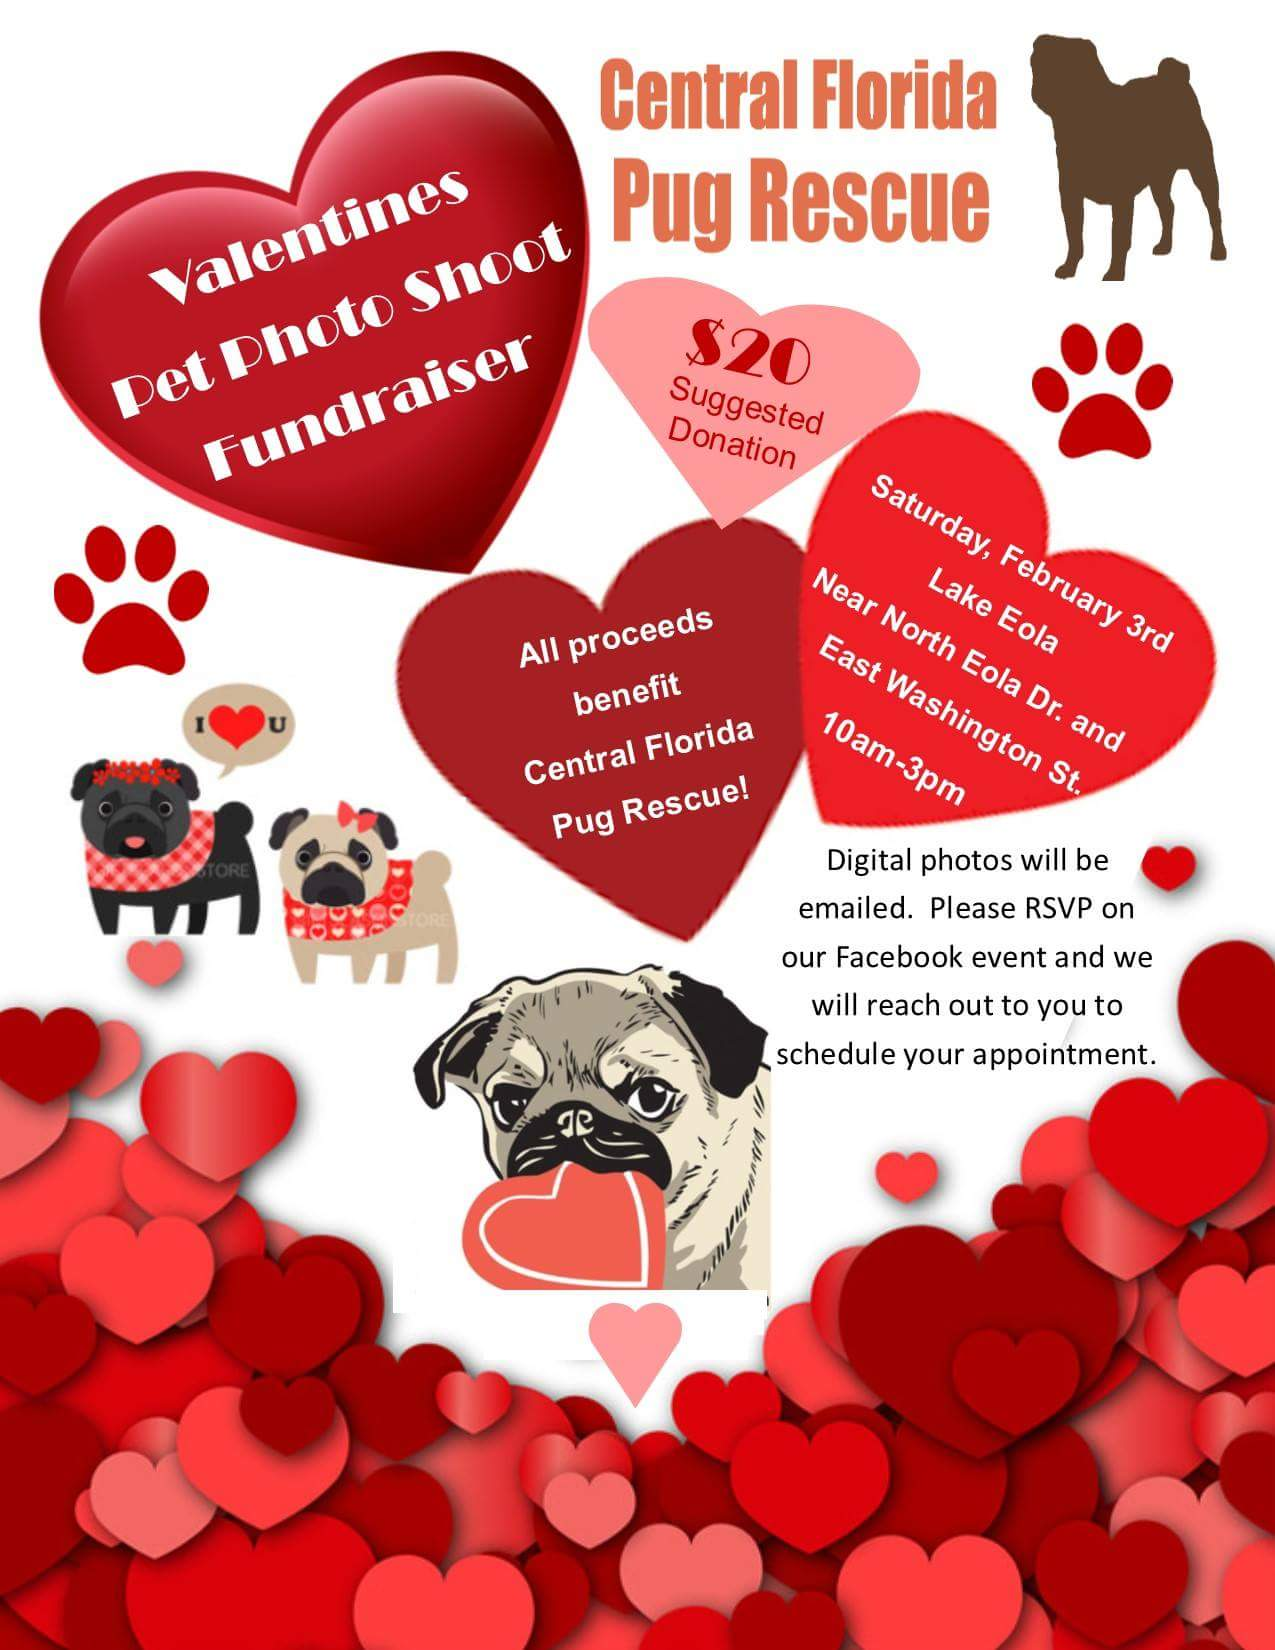 Valentines day fundraising ideas